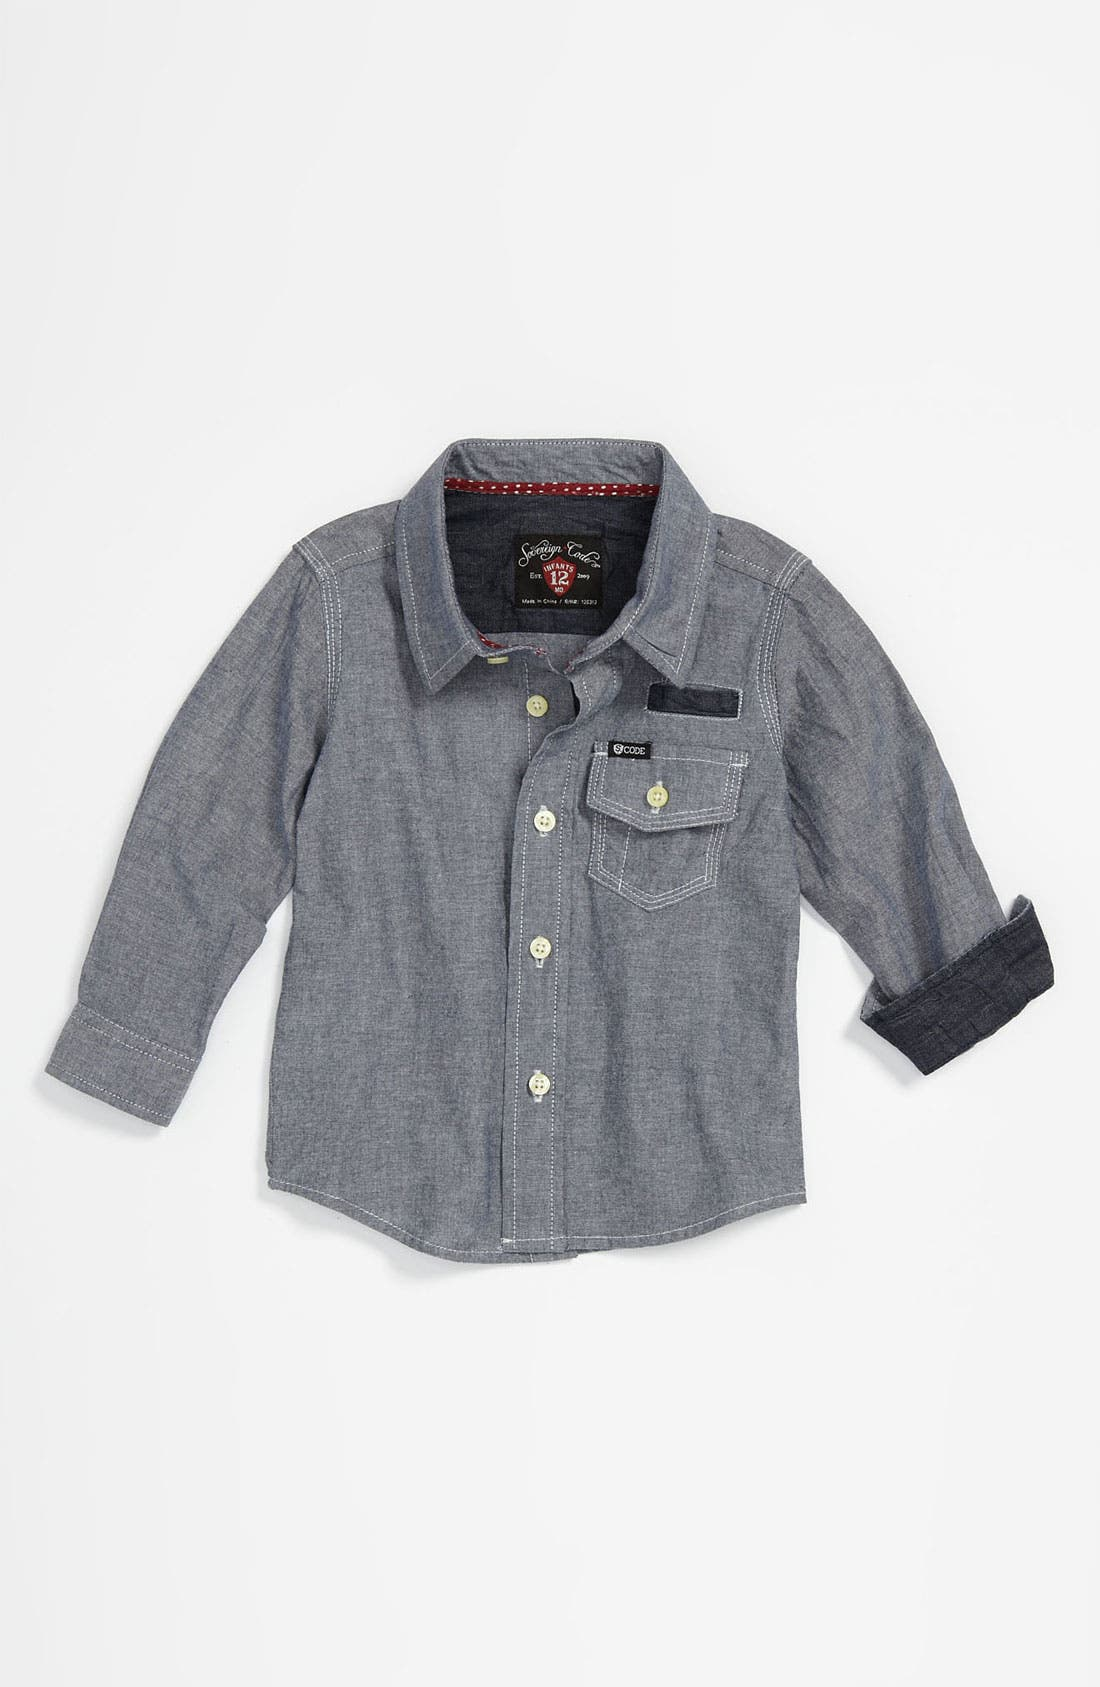 Alternate Image 1 Selected - Sovereign Code 'Paris' Chambray Shirt (Infant)